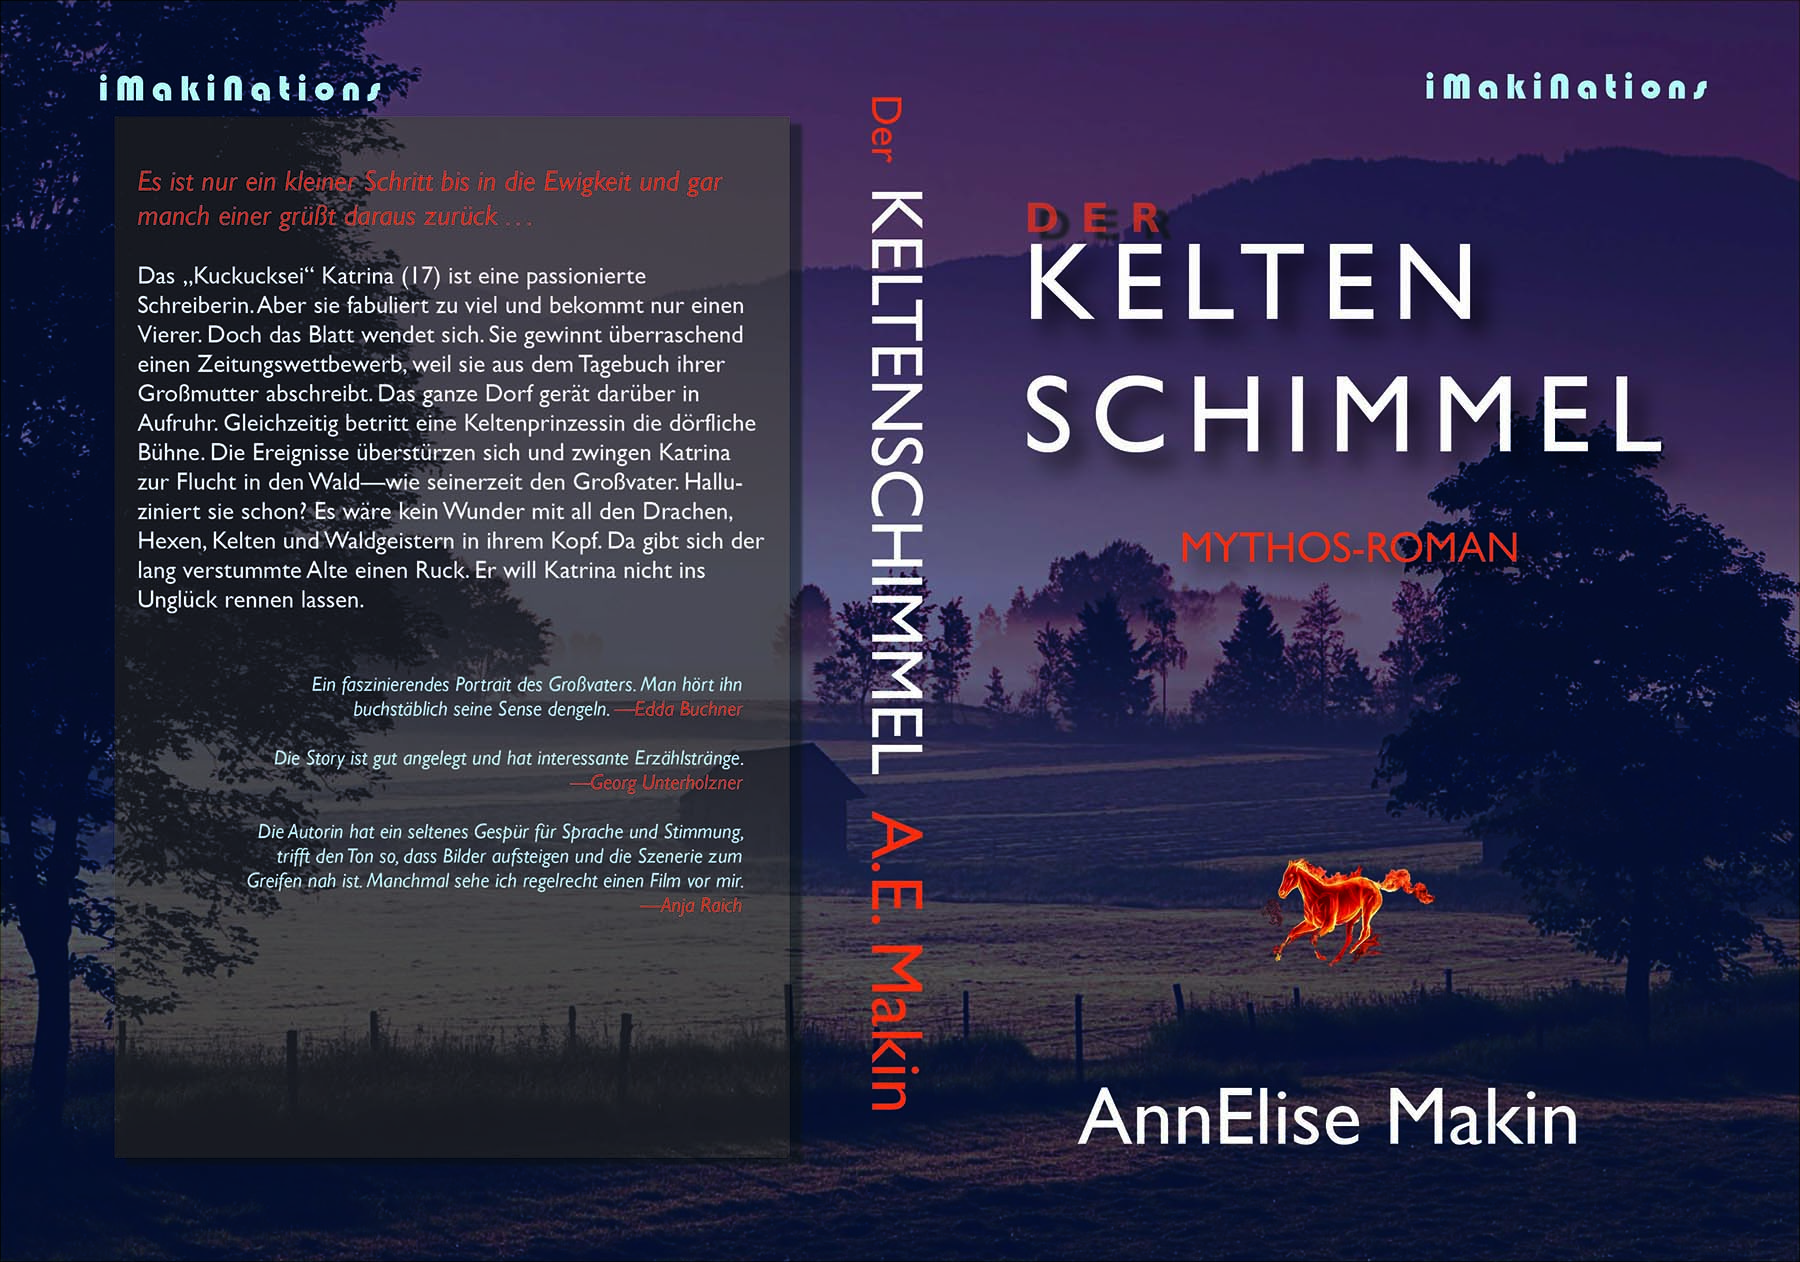 AnnElise Makin Keltenschimmel novel cover